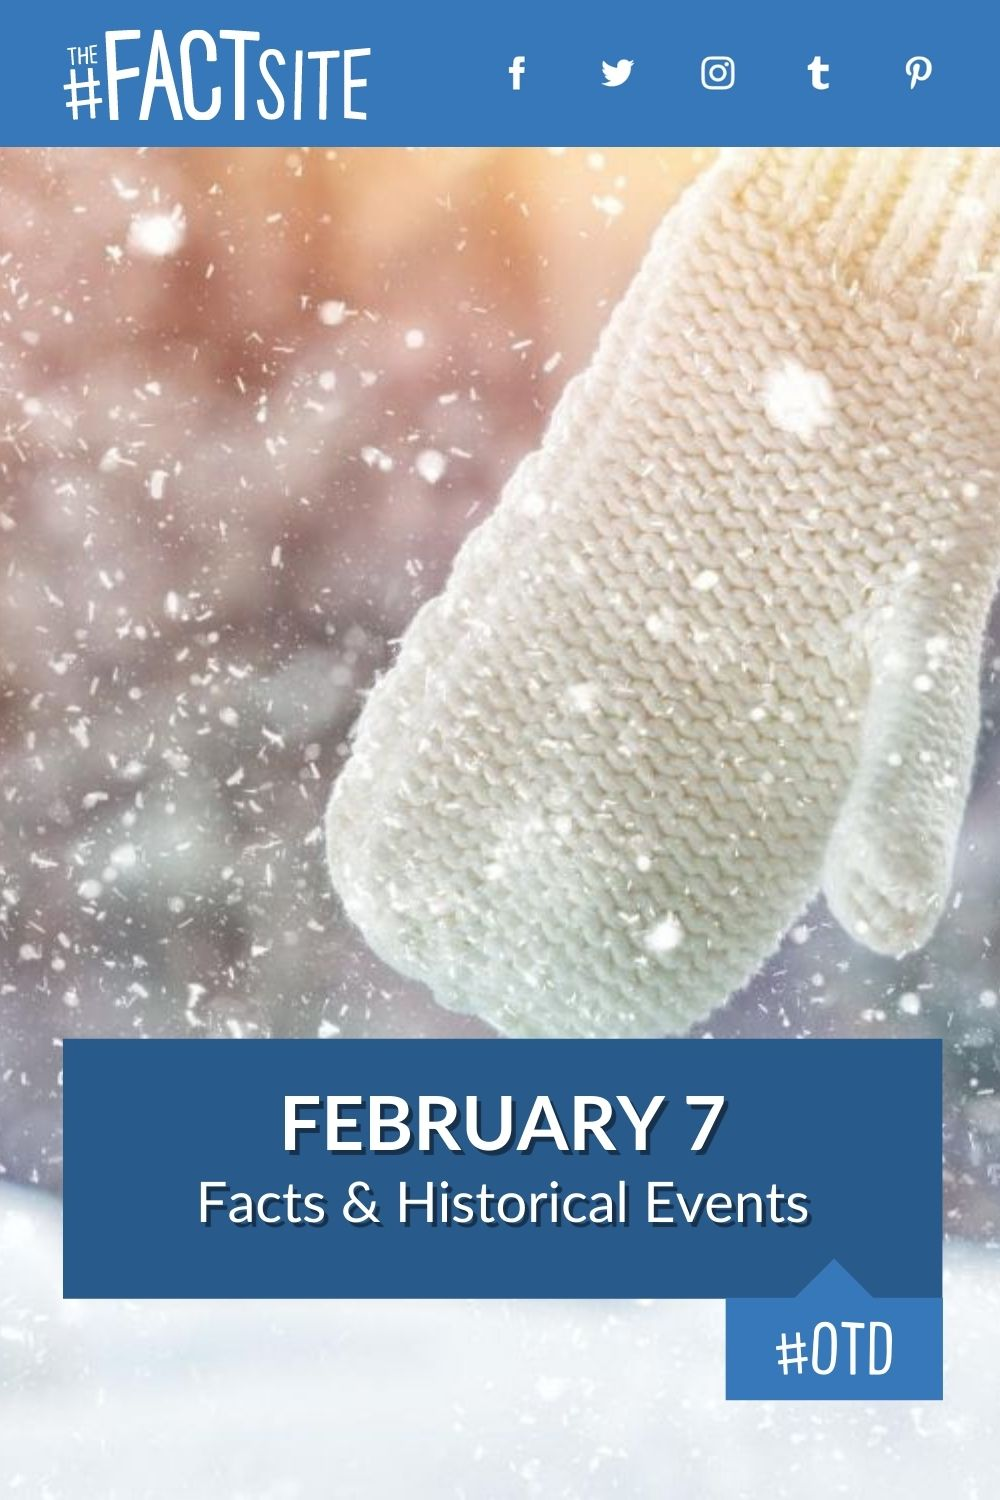 Facts & Historic Events That Happened on February 7